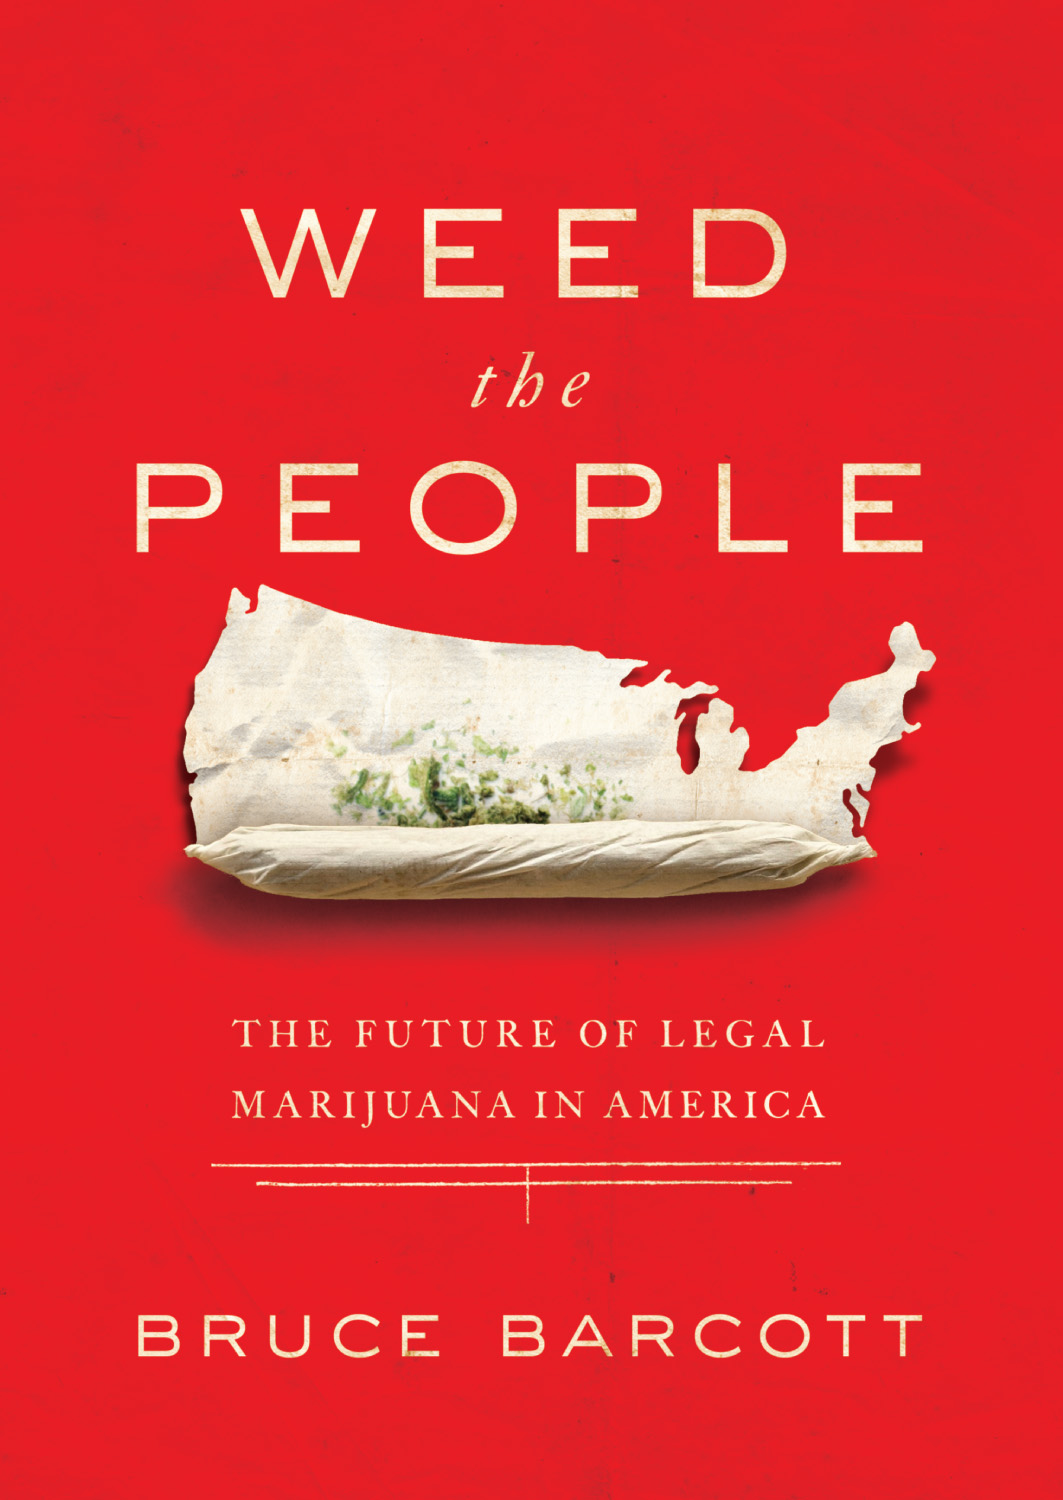 Bruce Barcott's Weed the People: The Future of Legal Marijuana in America.